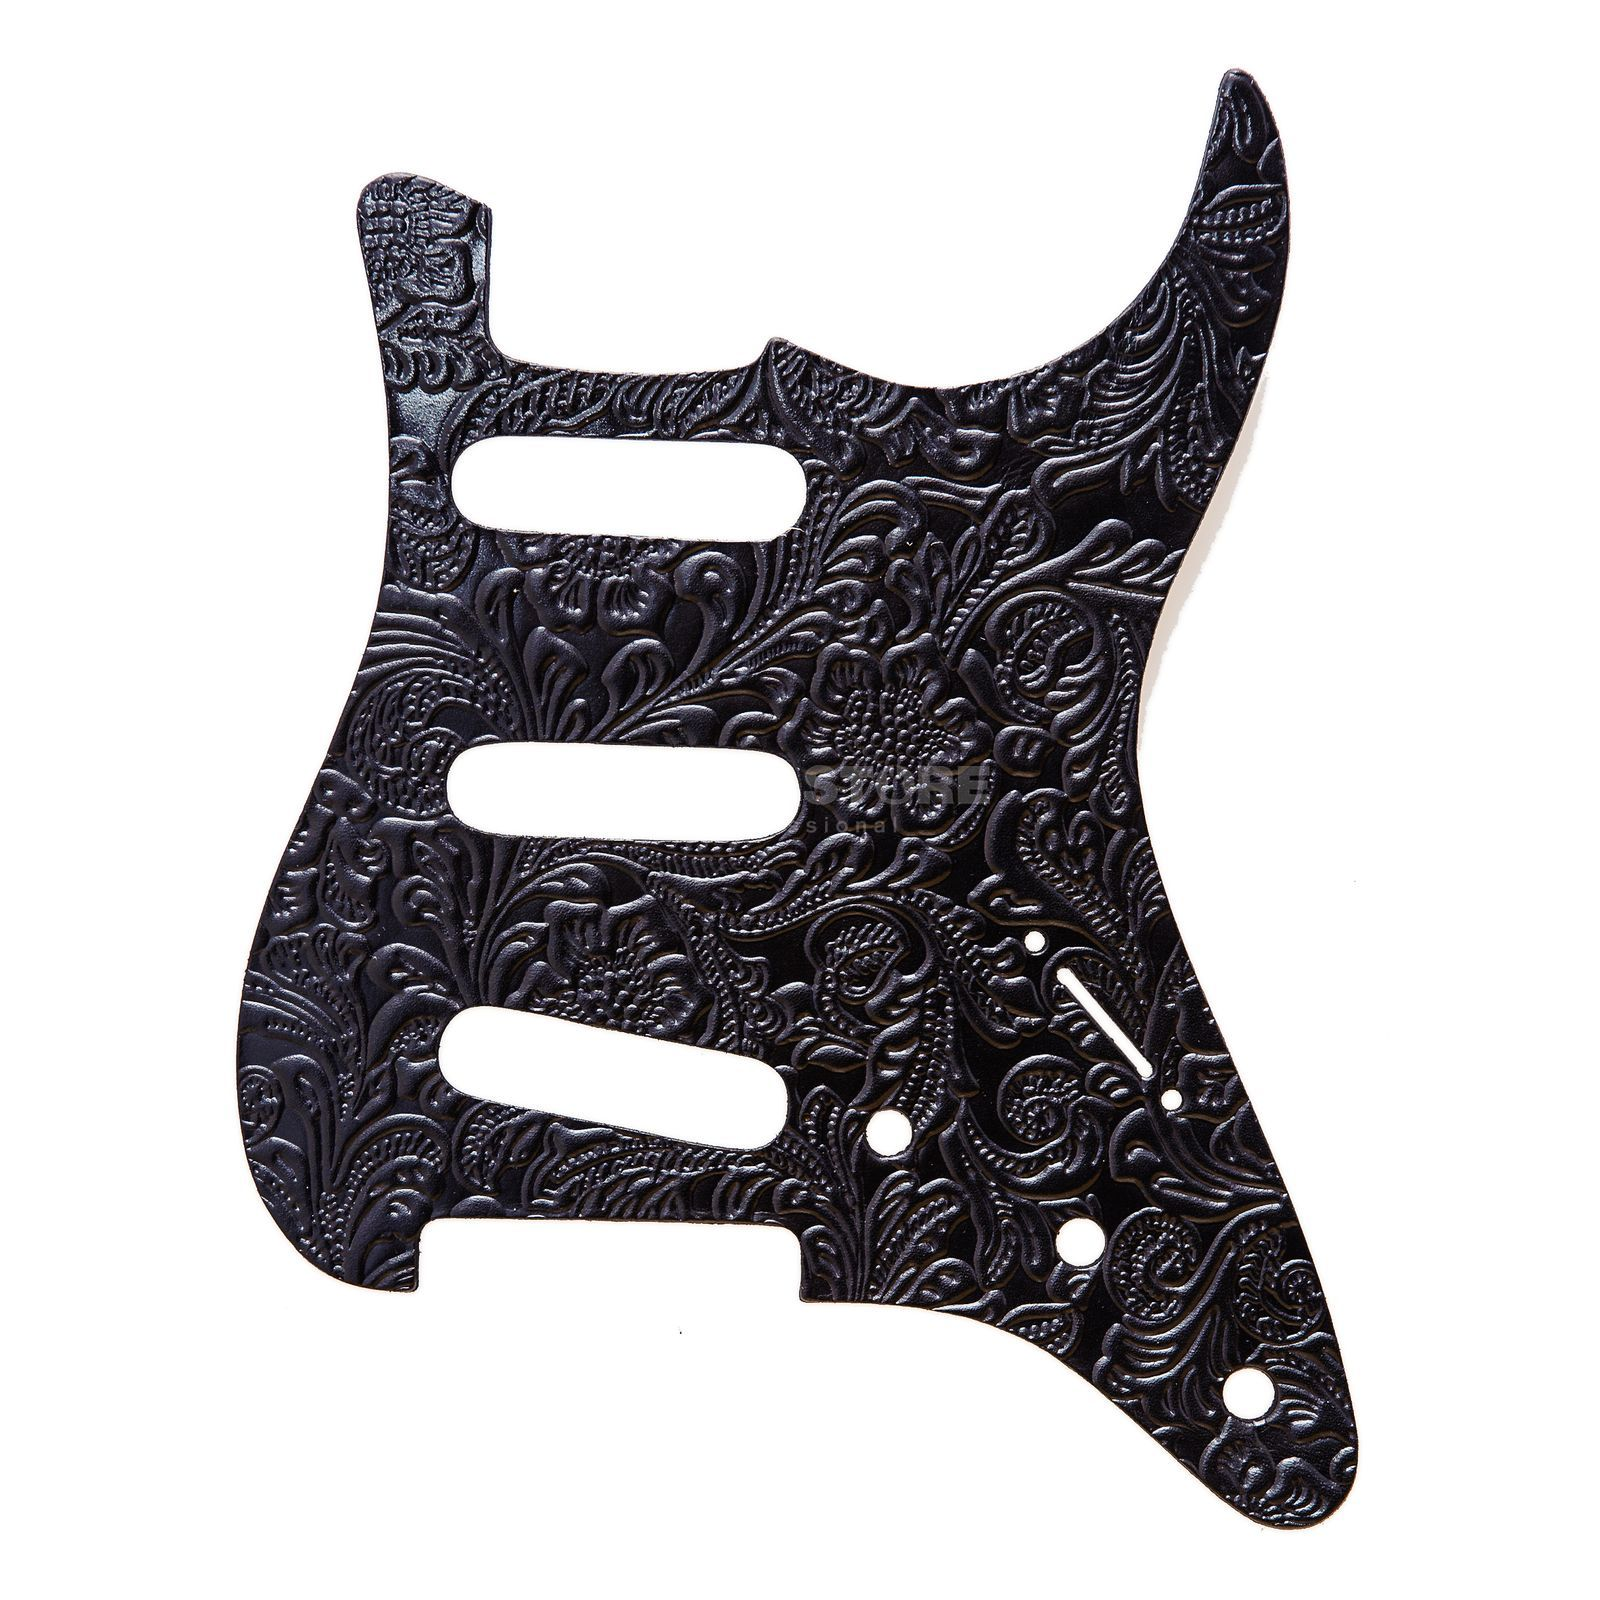 RightOn! Straps Pickguard S-Style Black Leather Engraved Produktbild